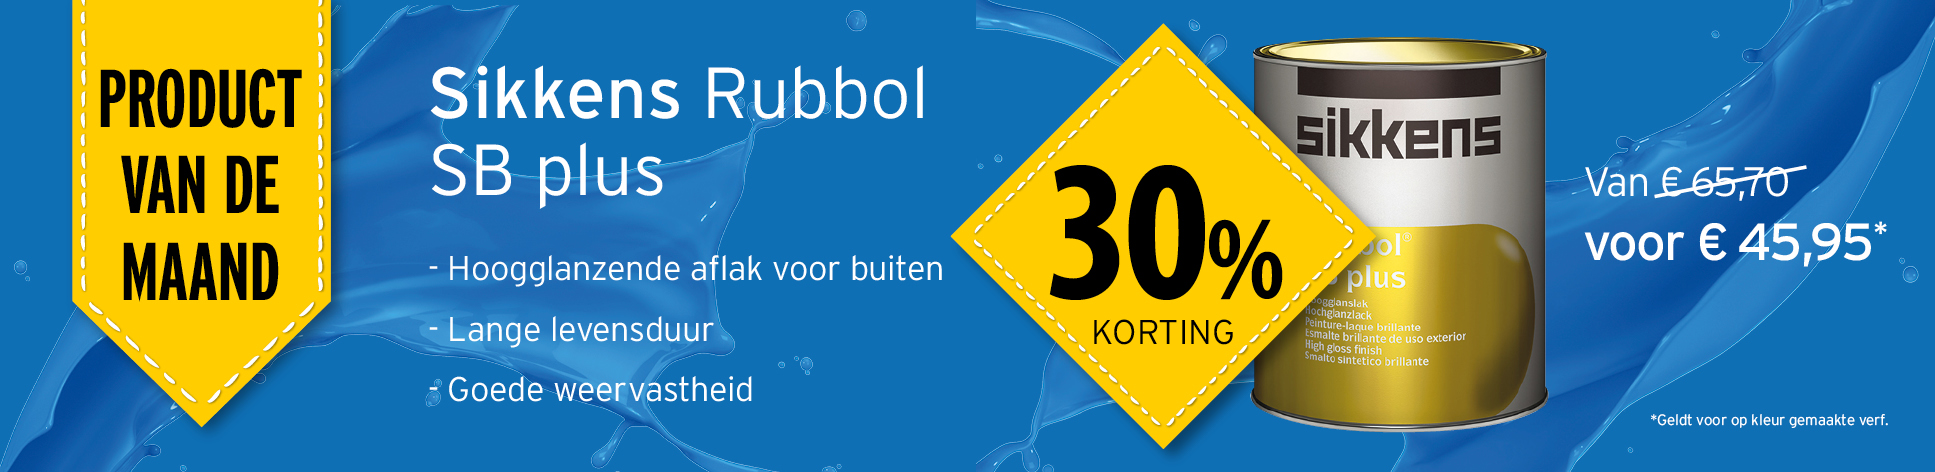 Sikkens Rubbol SB plus